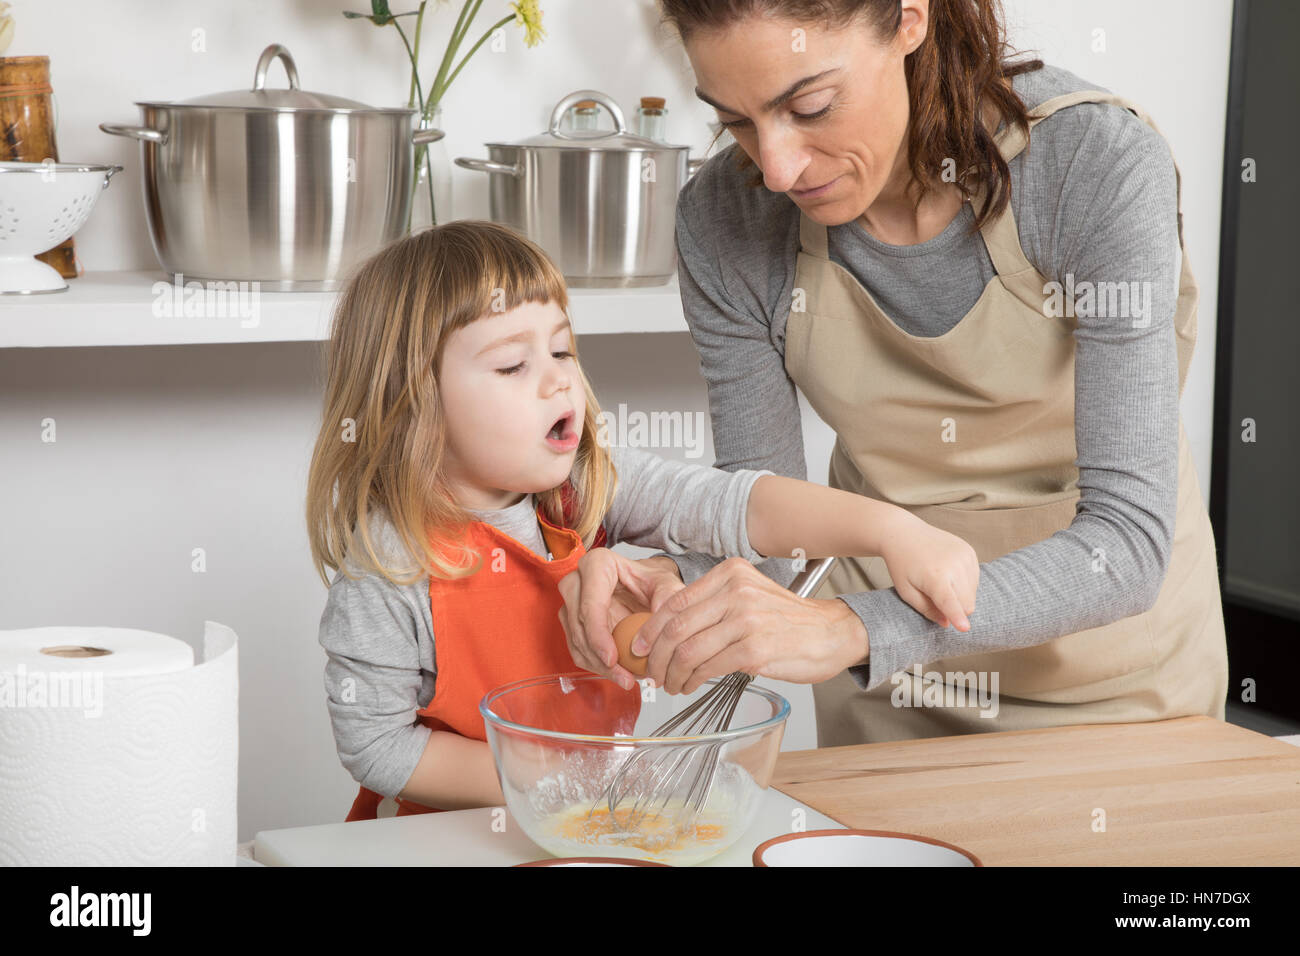 three years old child and woman mother with beige apron, in teamwork, cooking a sponge cake at kitchen home- Angry - Stock Image